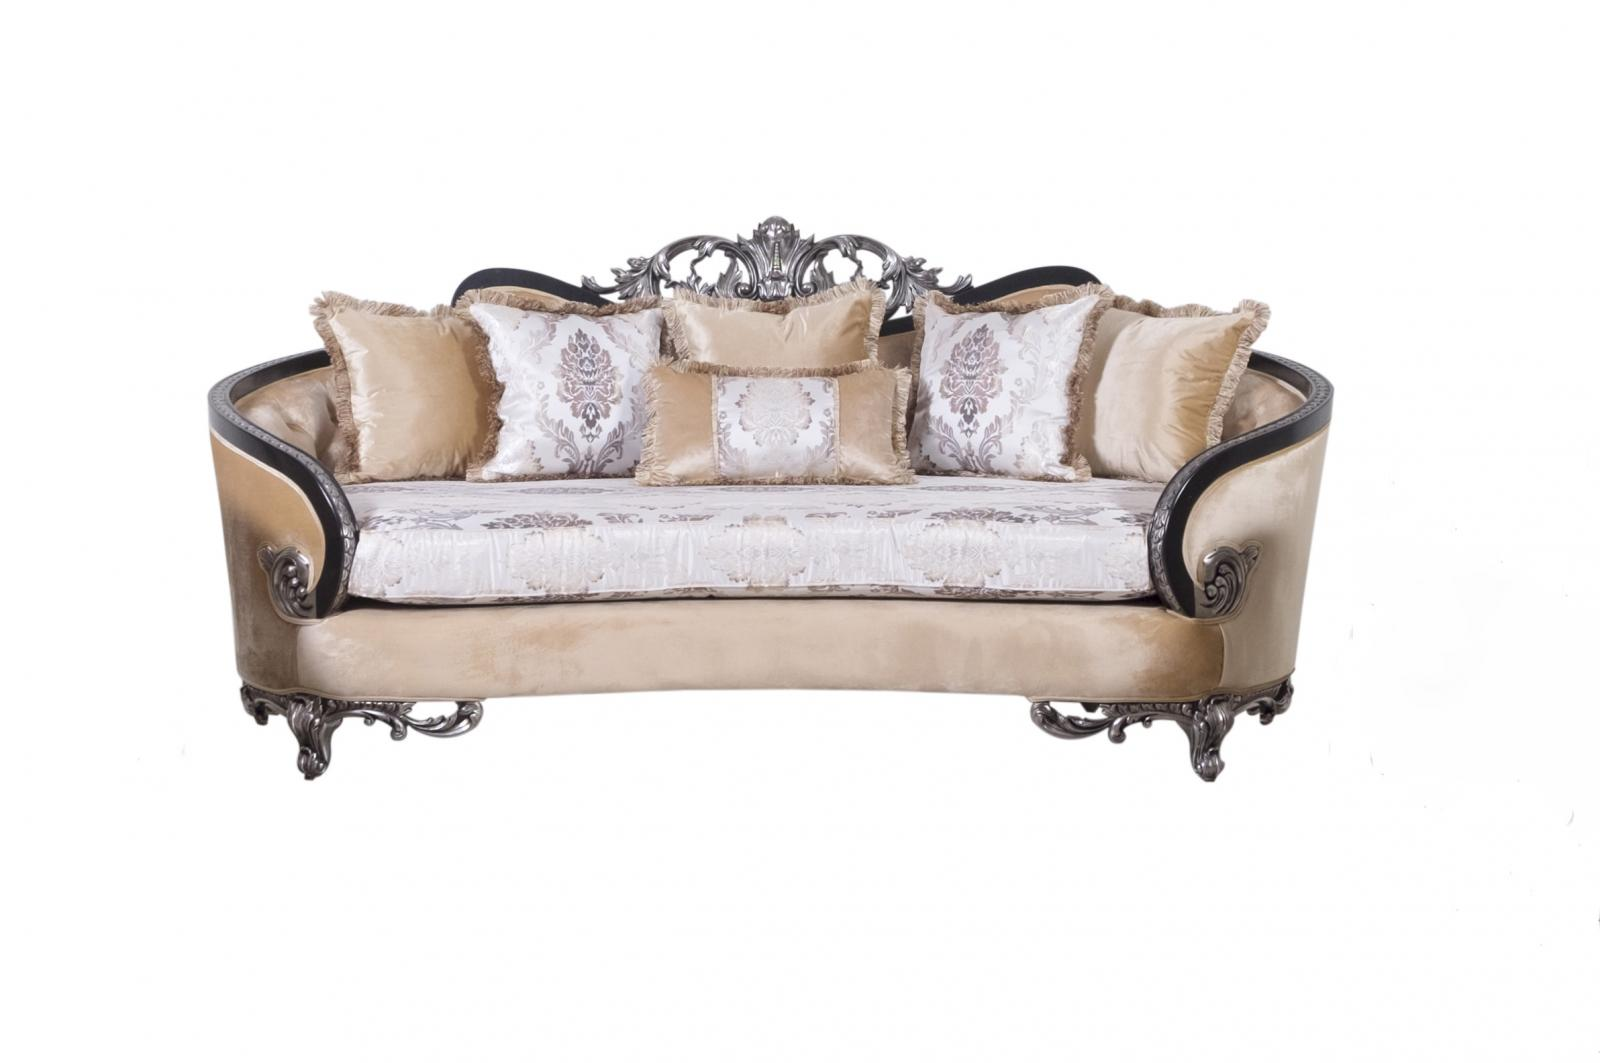 Classic  Traditional Black  Silver  Antique Wood  Solid Hardwood and Fabric Sofa EUROPEAN FURNITURE 35022-S